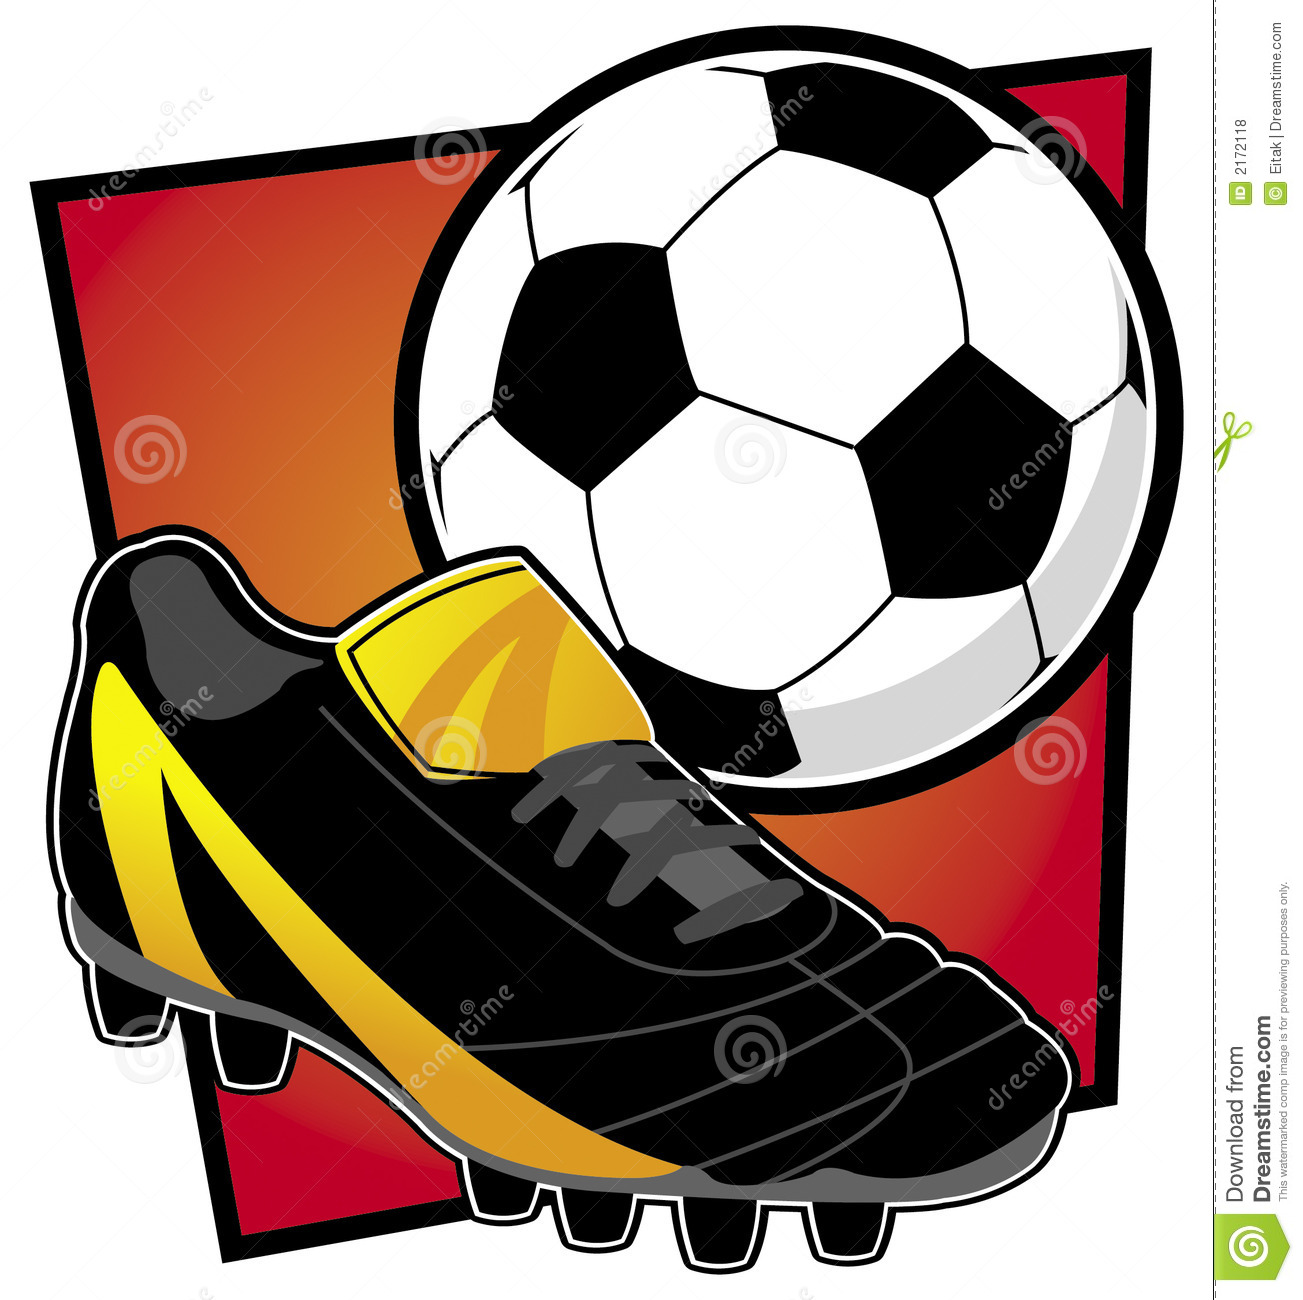 Abstract Illustration Of Basic Soccer Equipment Similar Themed Images